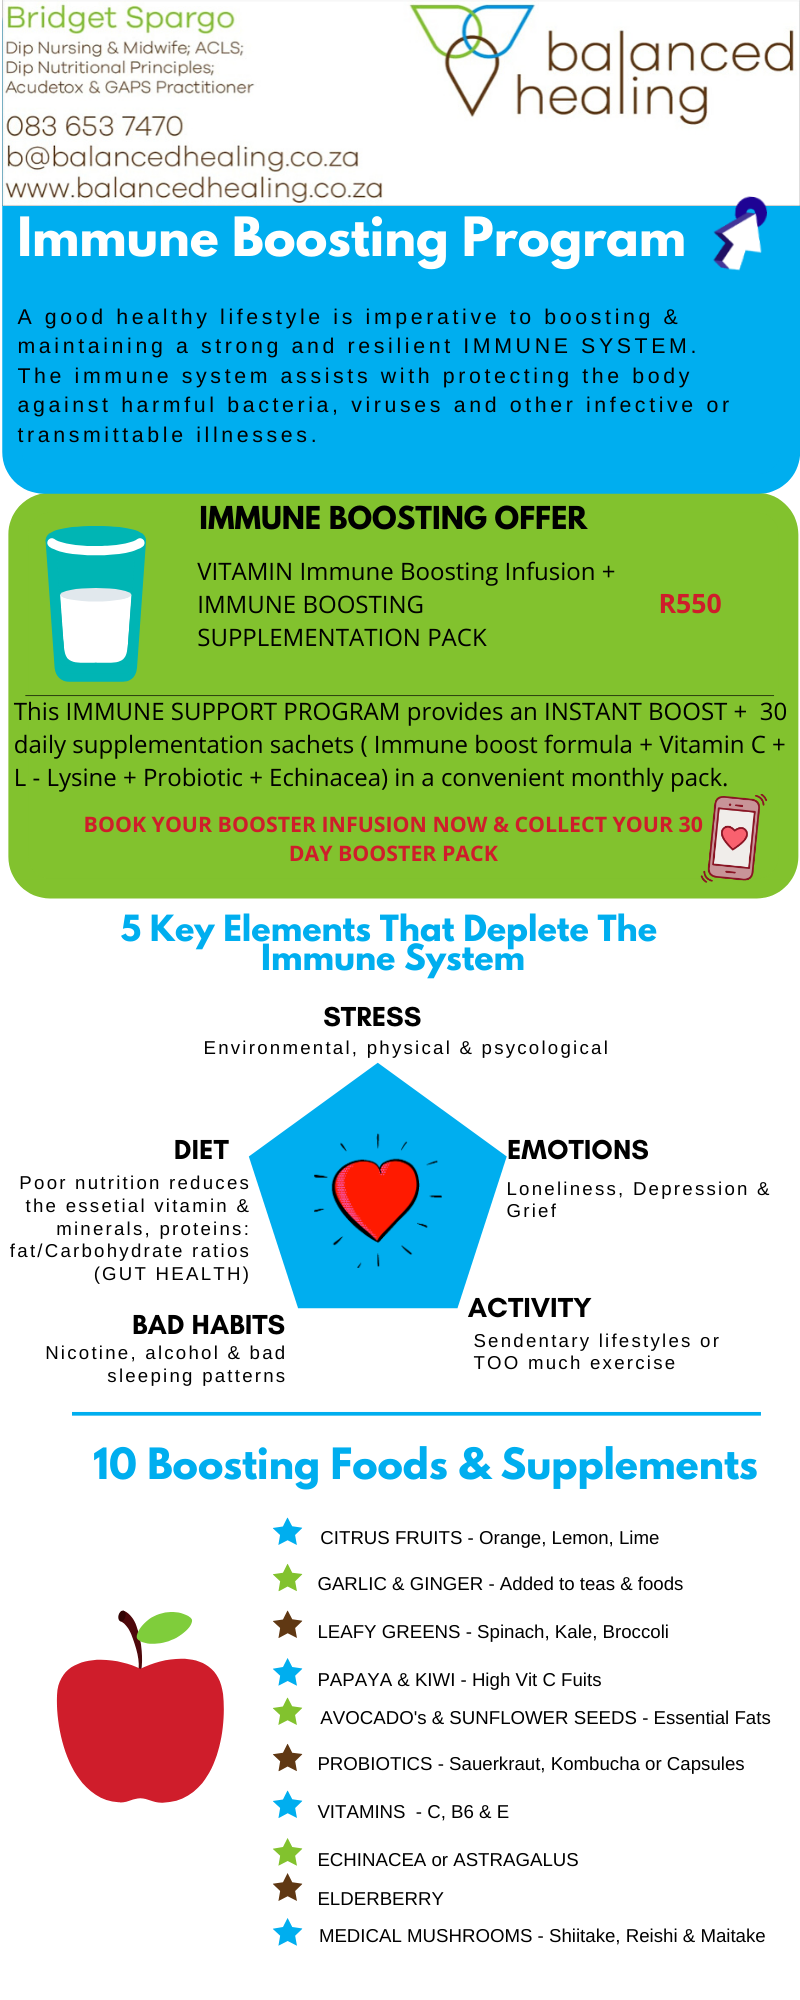 Immune booster image